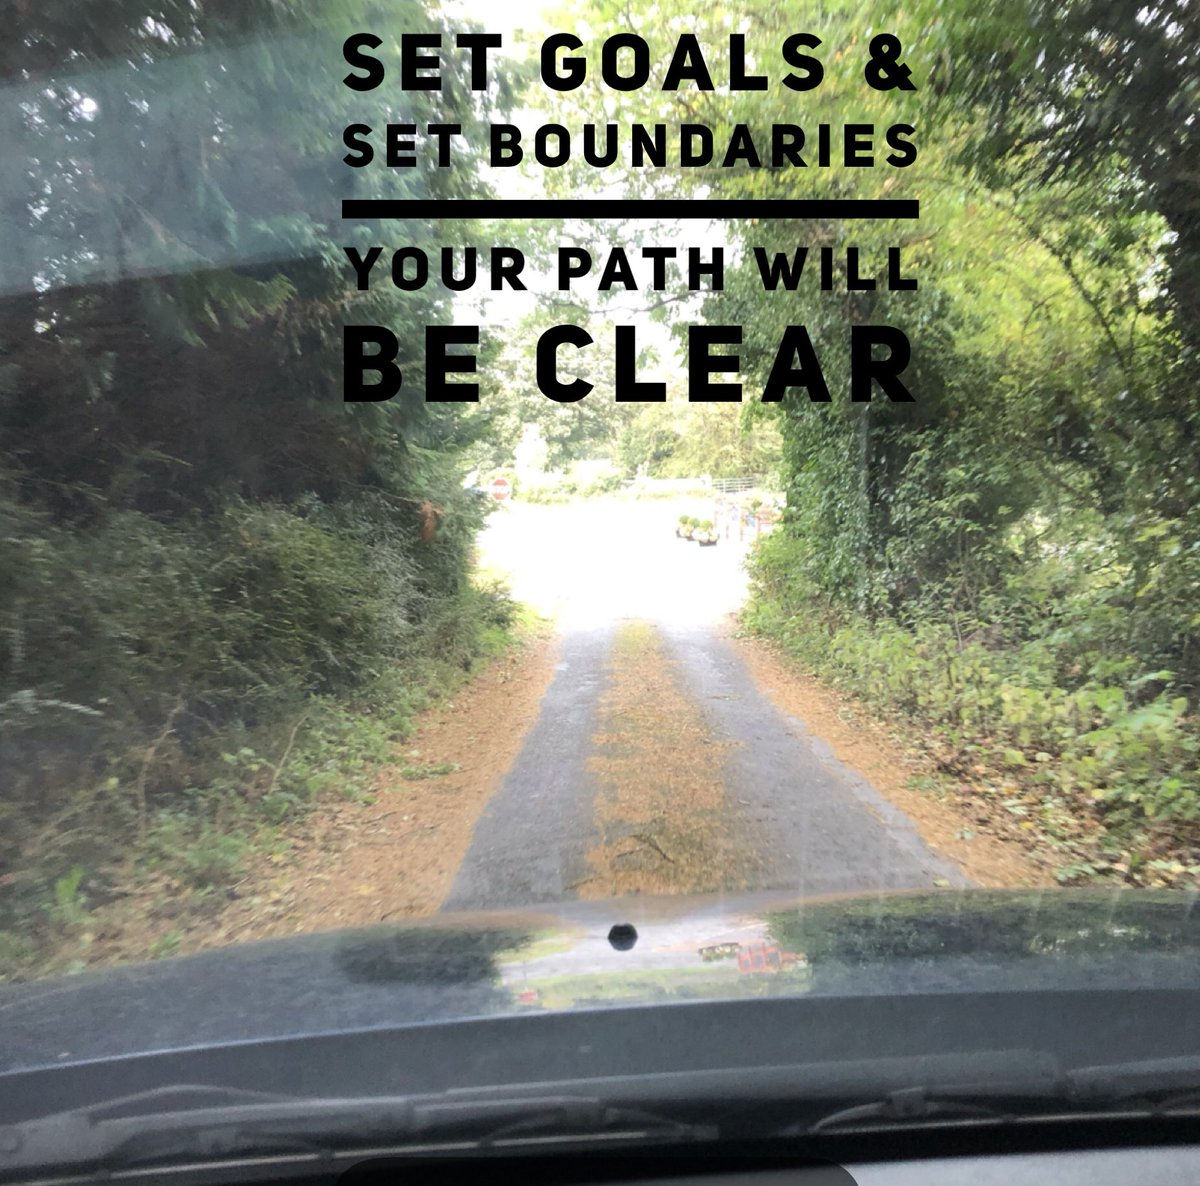 #setgoals #setboundaries & #yourpath with be #clear Know what you want & what you're unwilling to accept What #goals have you set for this week? What are the #boundaries you will uphold this week? What's 1 thing you can do today to help you create this?  Want to know? Message me!